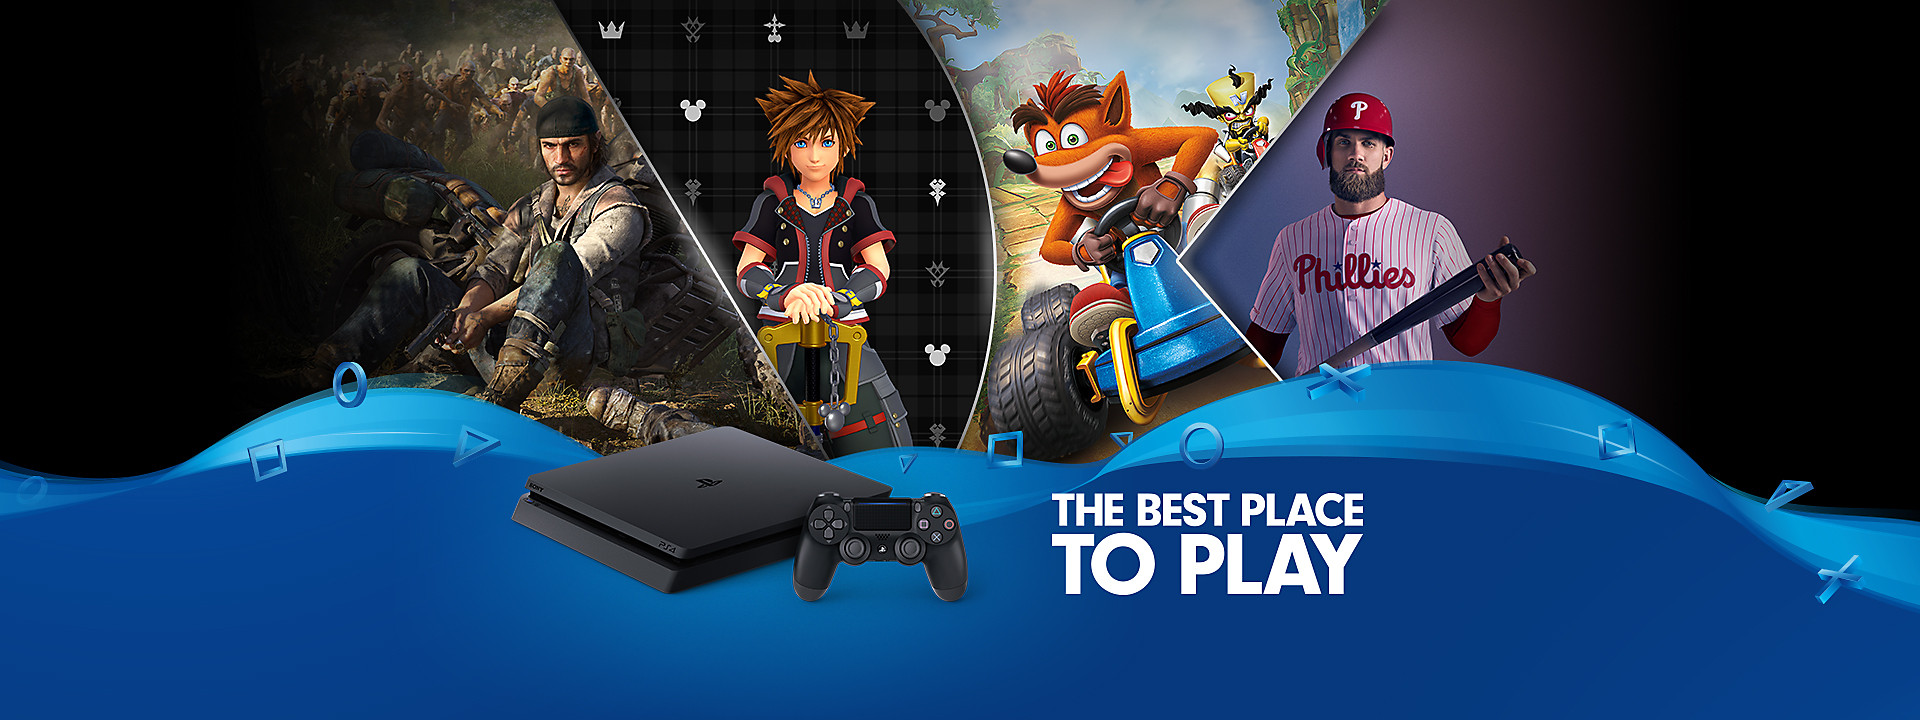 Playstation4 Systems Bundles Playstation - 19 best games i like images games roblox pictures what